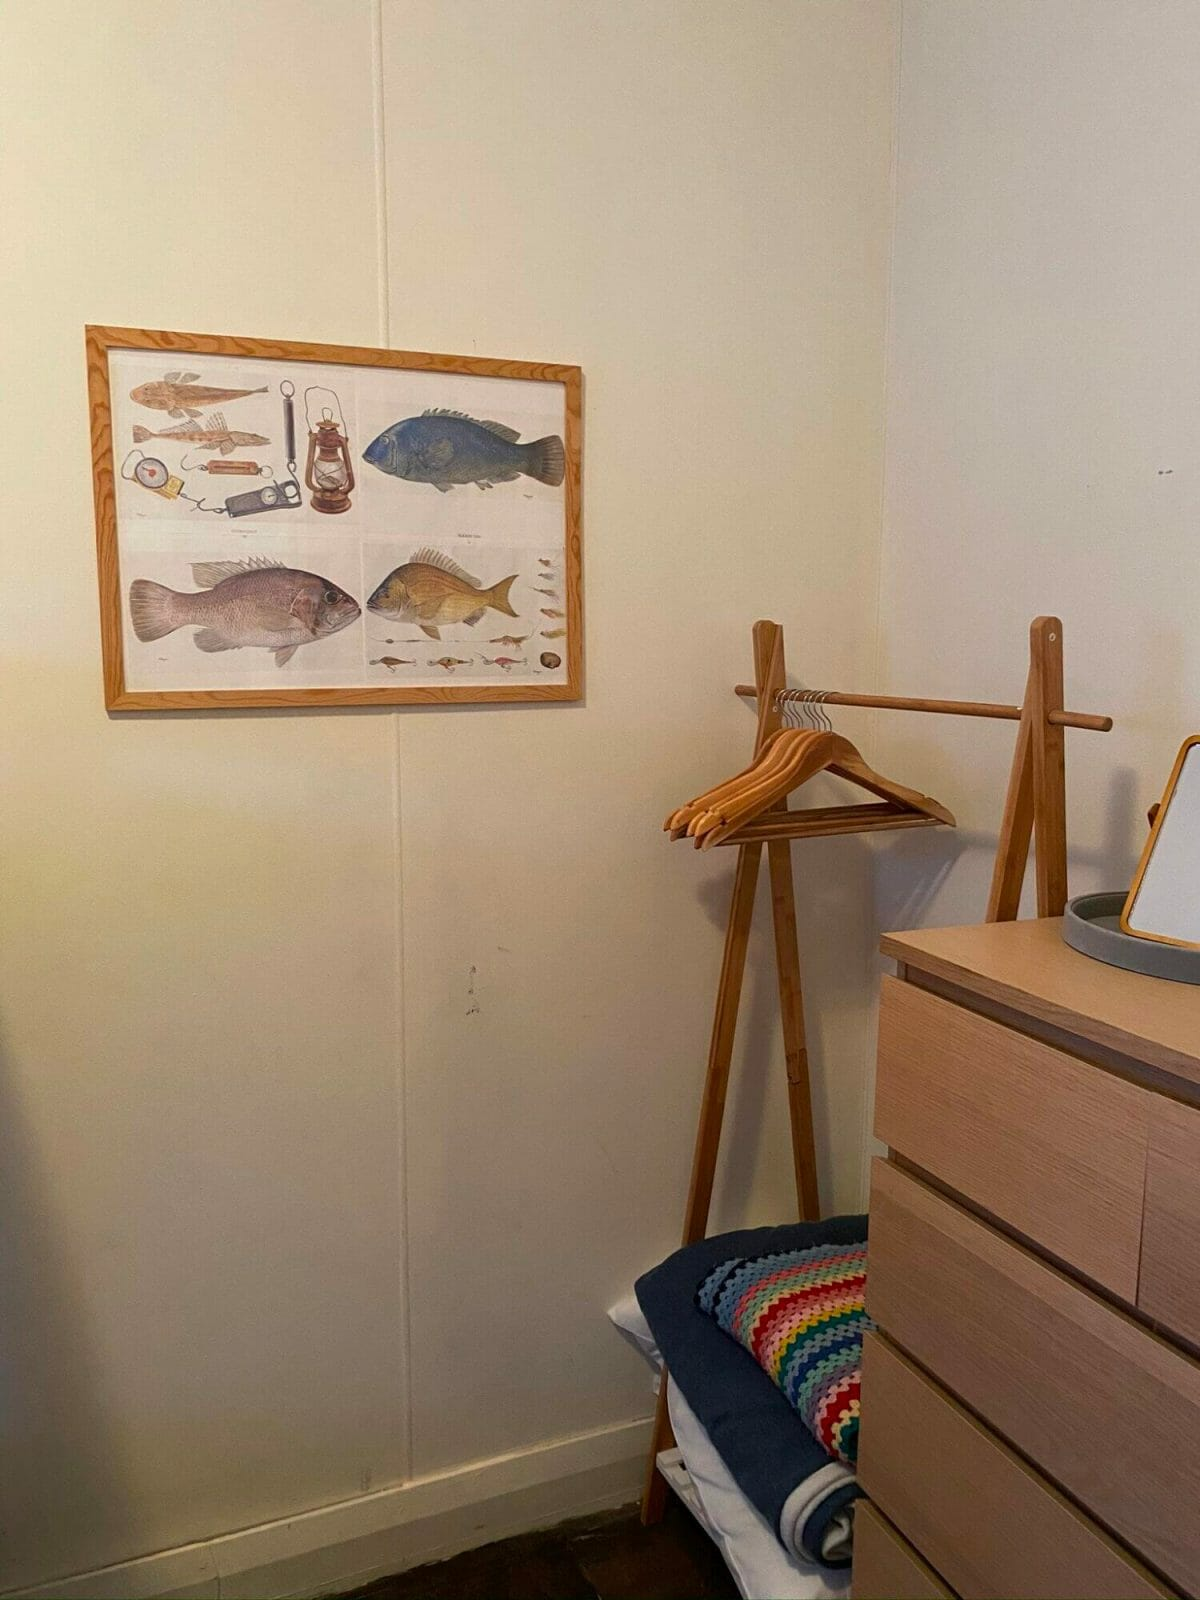 Weekender - Accommodation in Bremer Bay - 21 Barbara Street. Plenty of hanging and draw space in both bedrooms